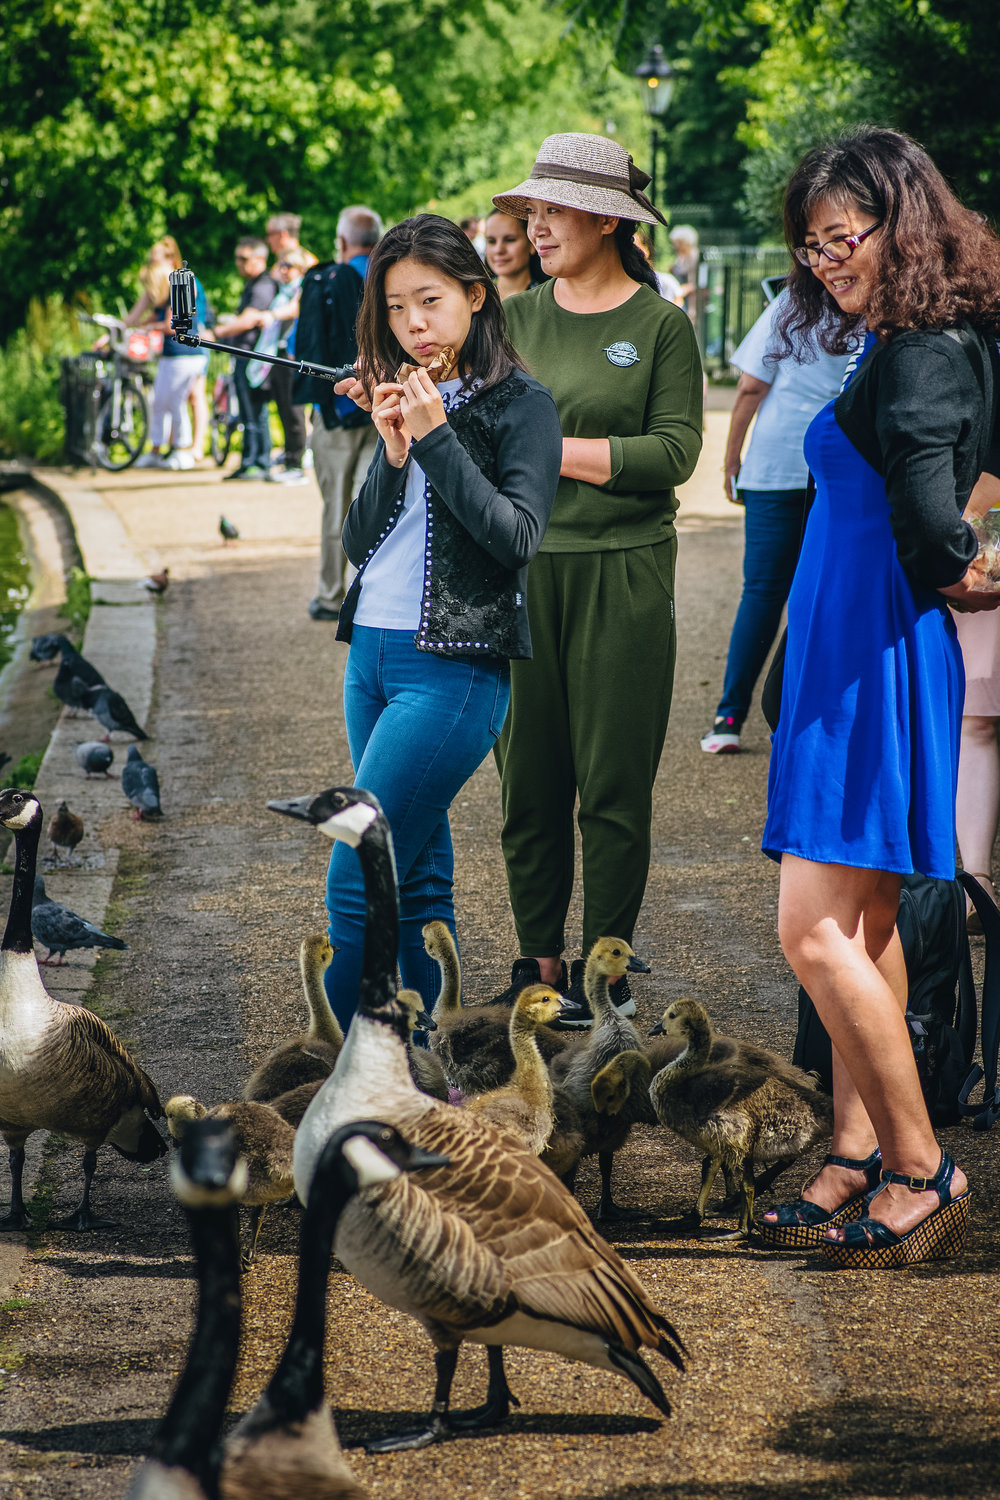 I tried to take a few street shots which seemed to be working out okay until the geese attacked me. These people found it hilarious.